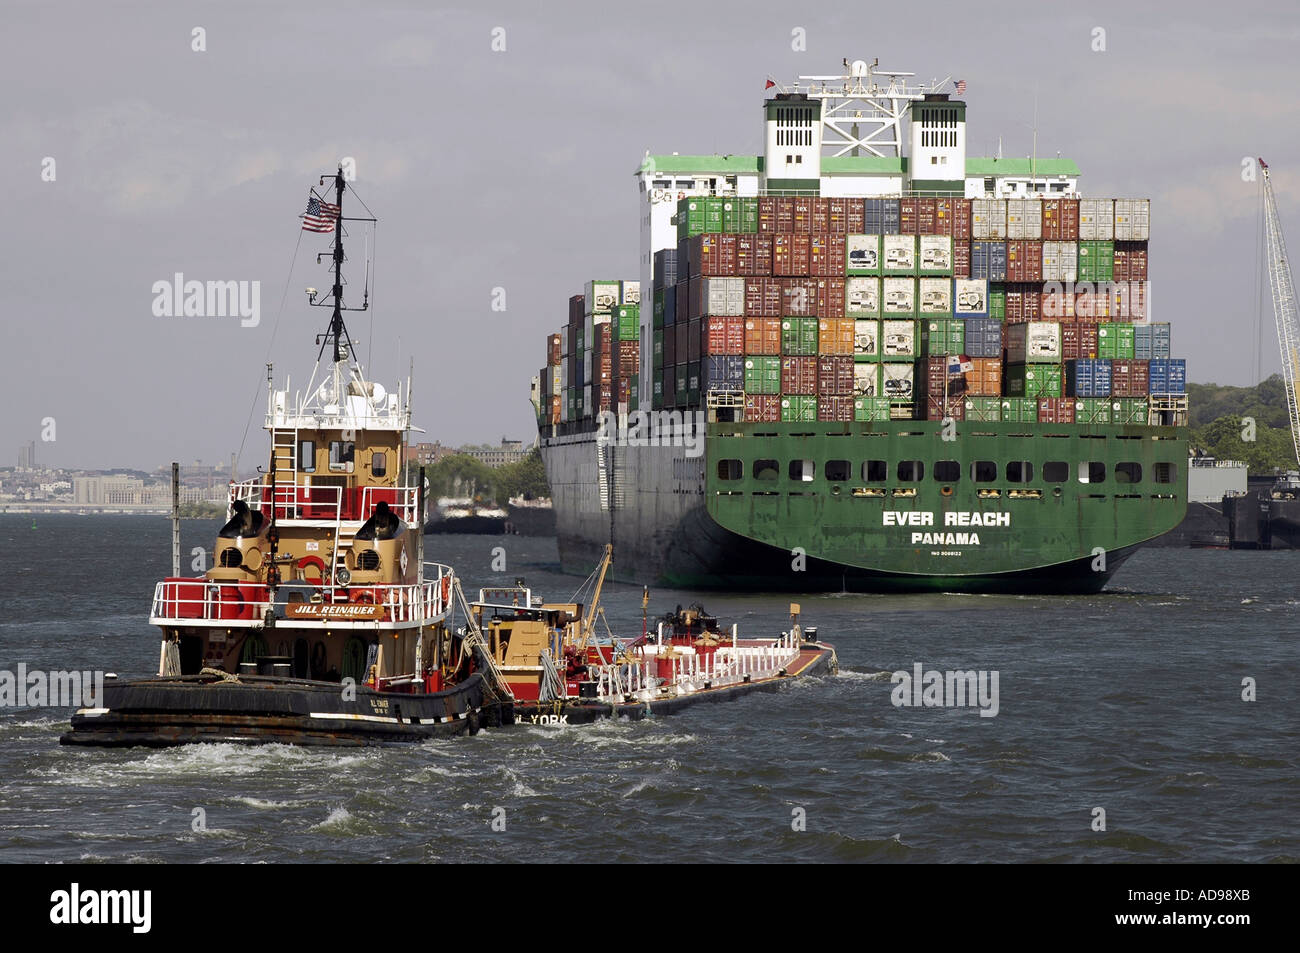 Container ship the Ever Reach run by the Evergreen Lines - Stock Image